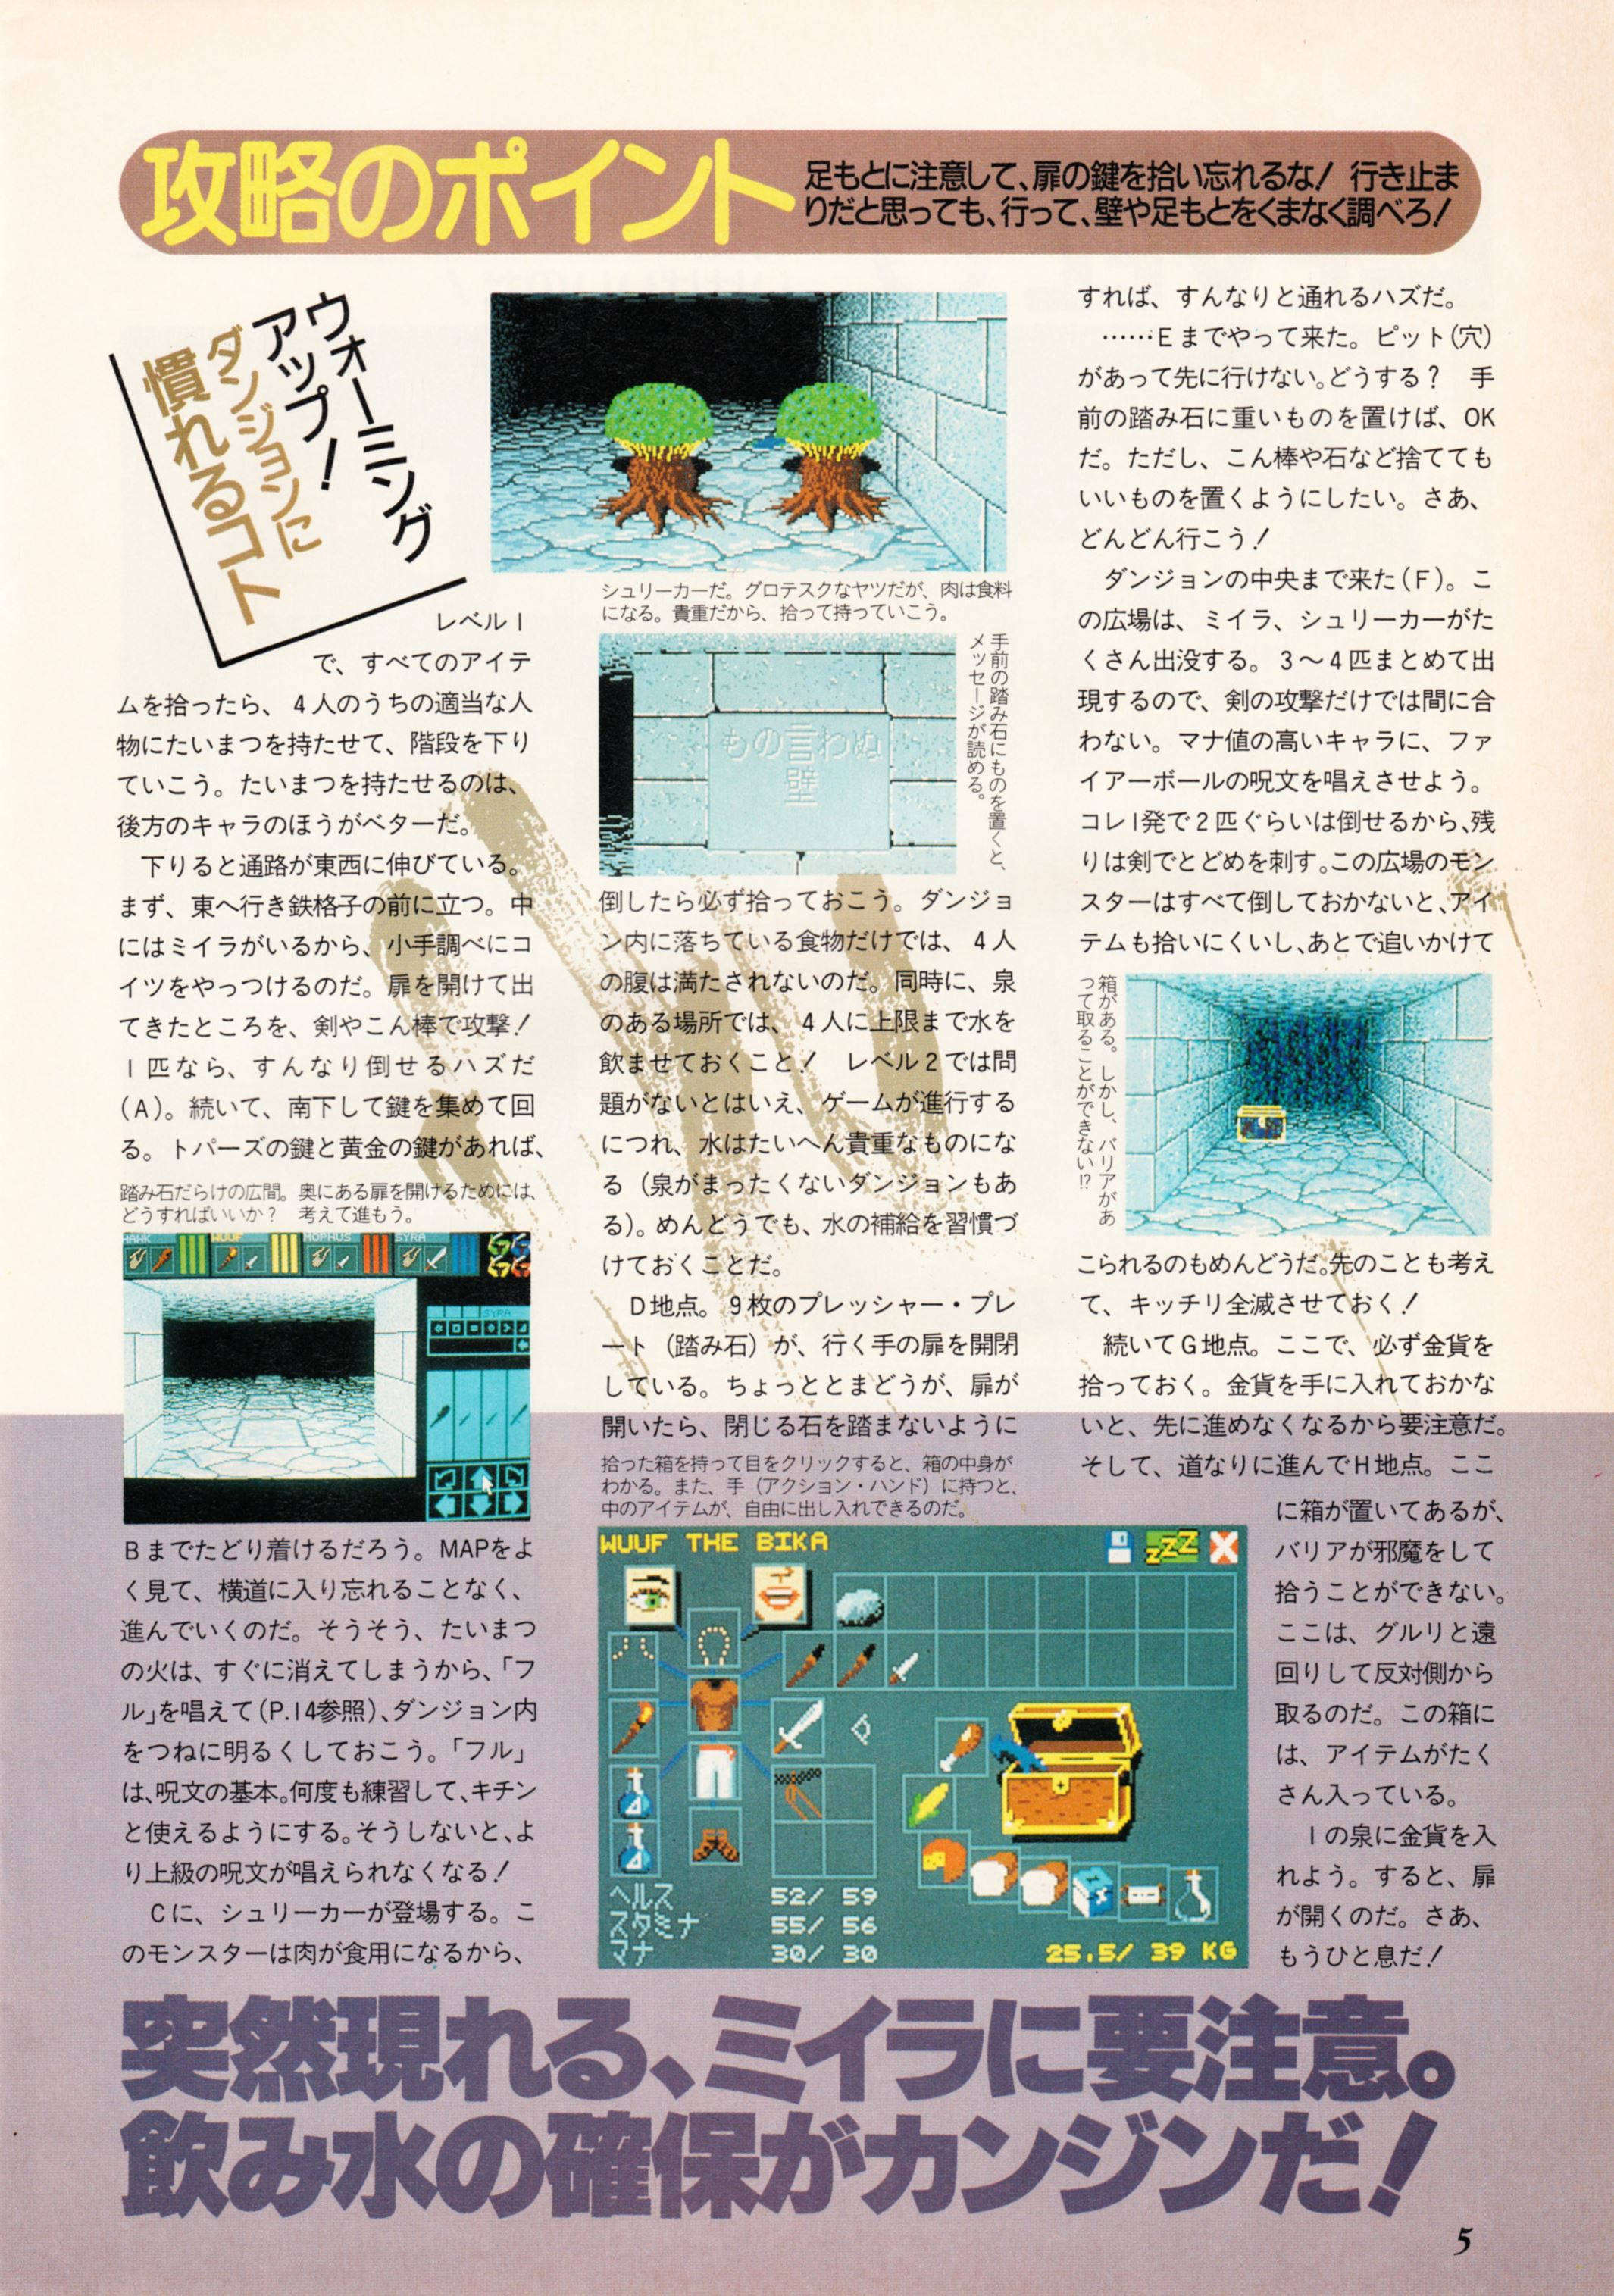 Supplement - Dungeon Master Companion Manual Guide published in Japanese magazine 'Popcom', Vol 4 No 1 01 April 1990, Page 7